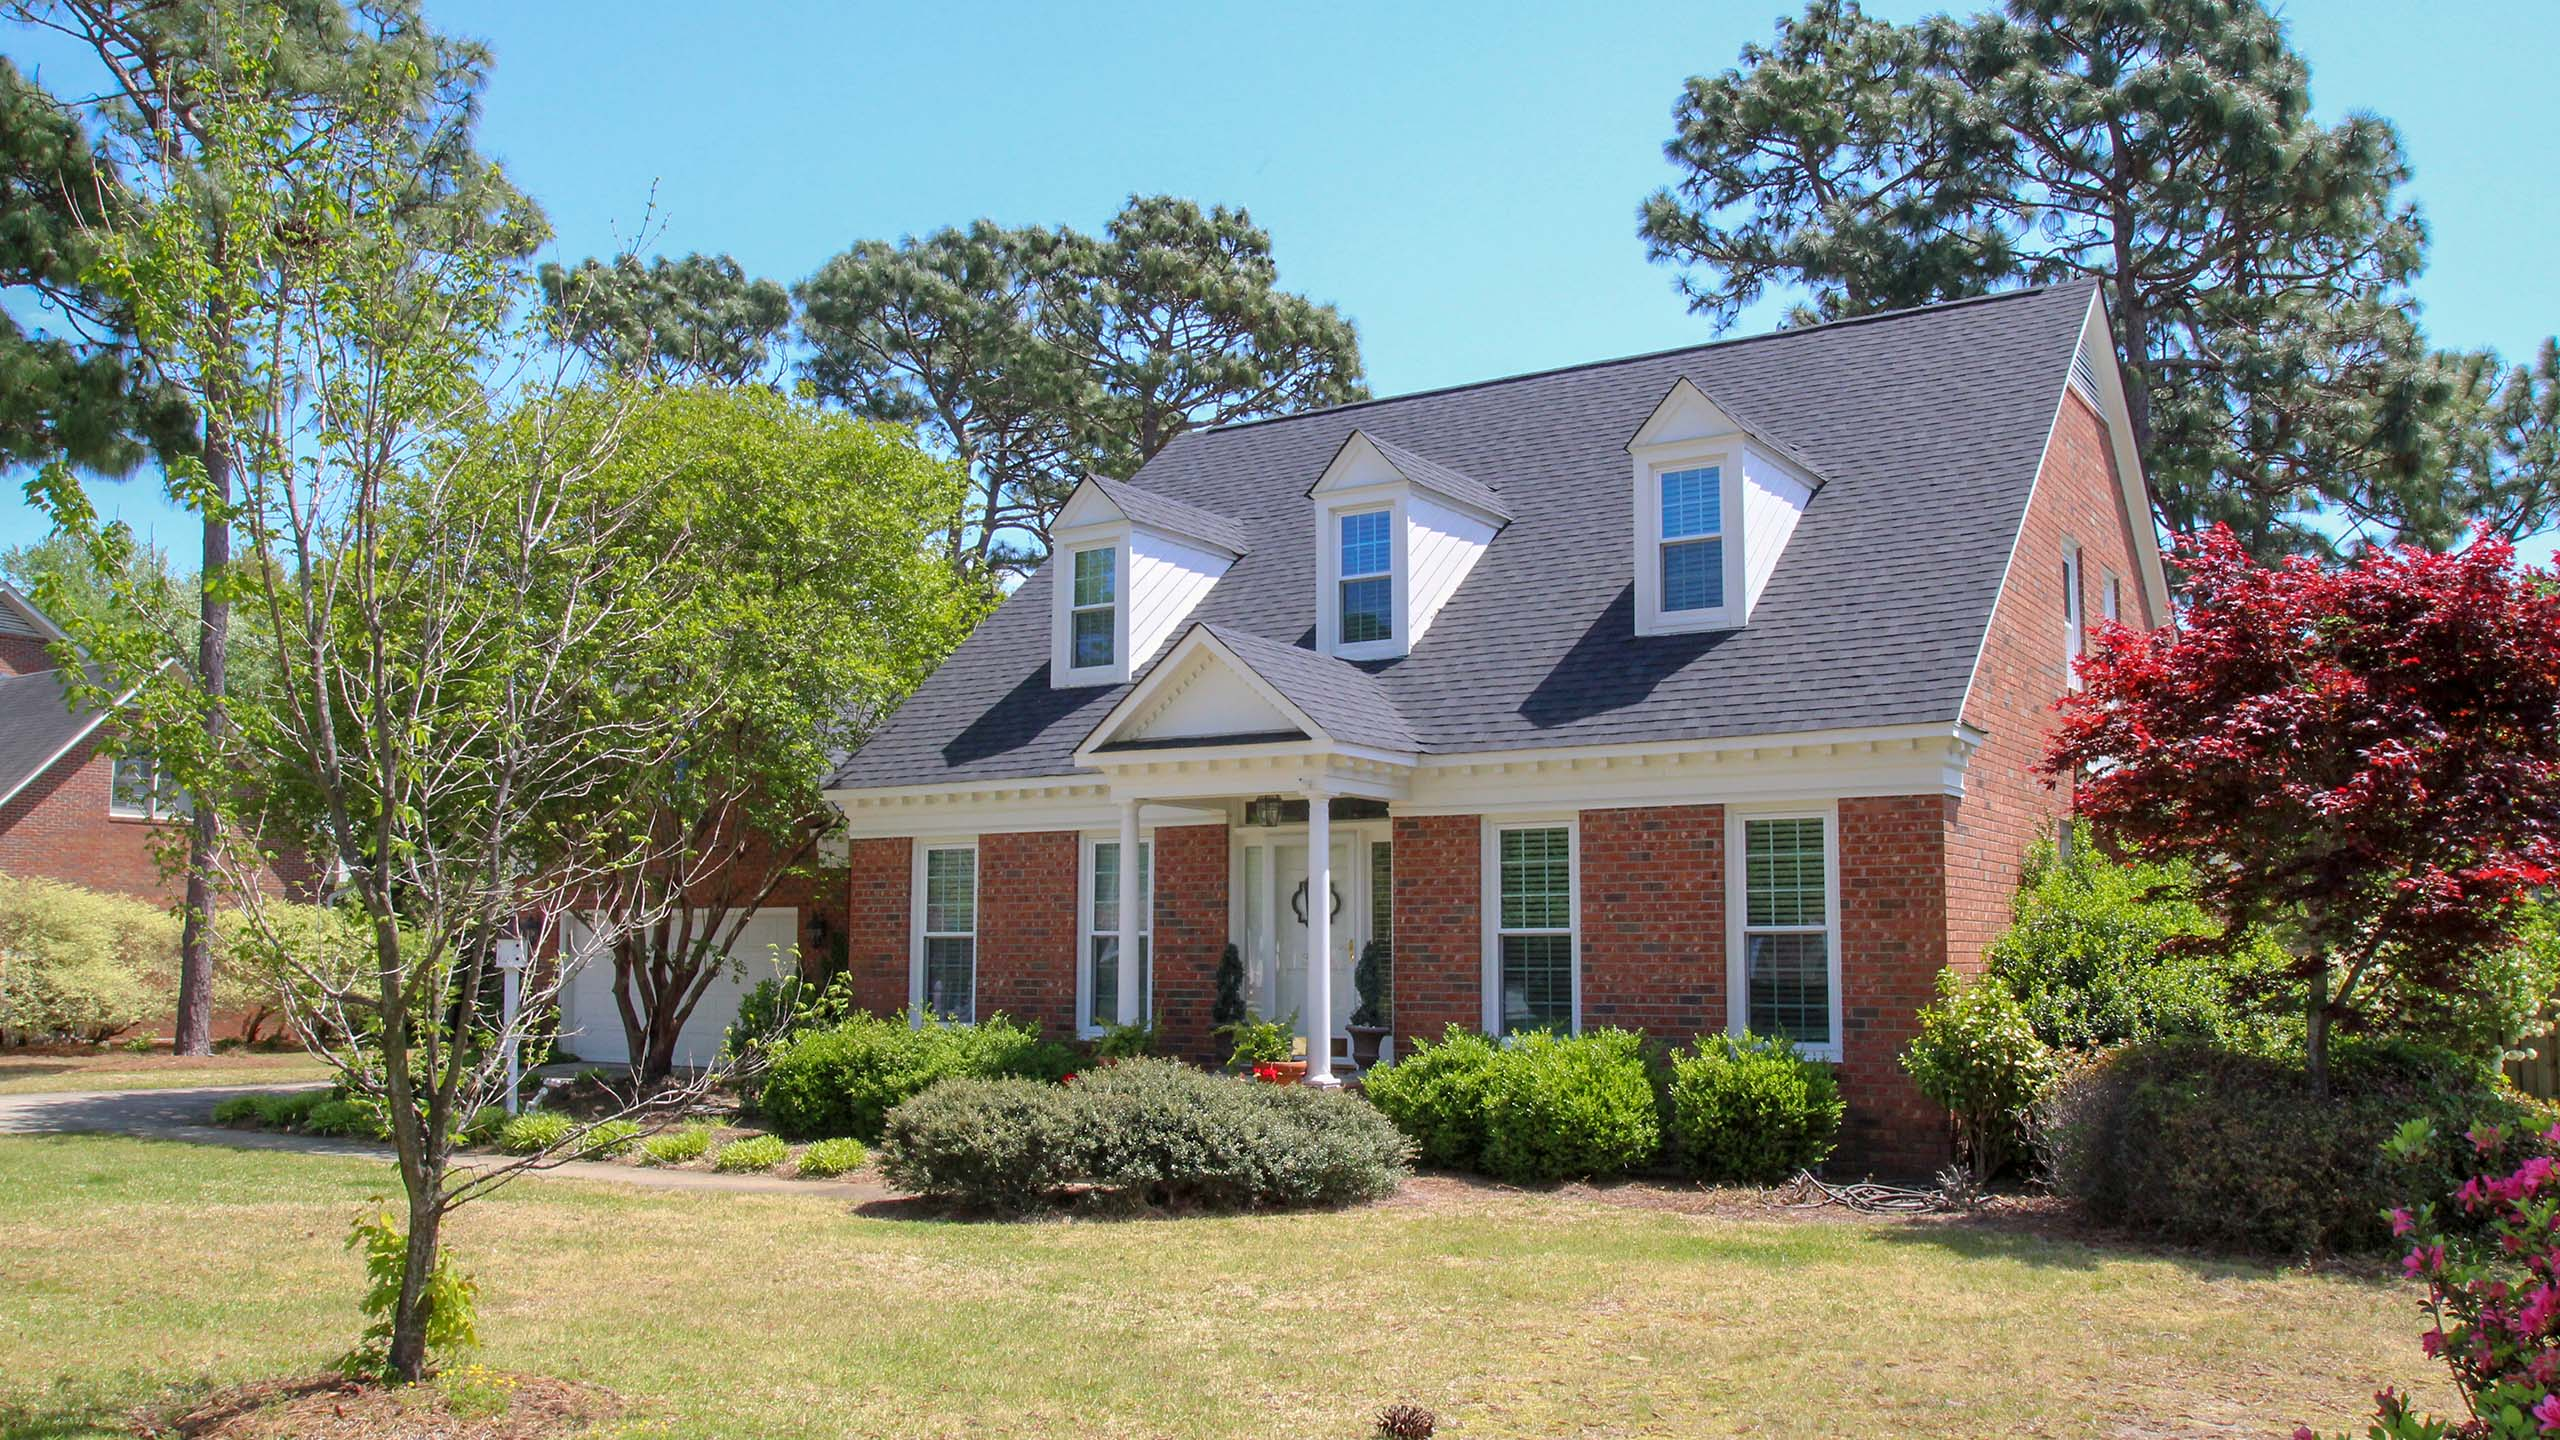 Cape style house with new shingle roofing home page